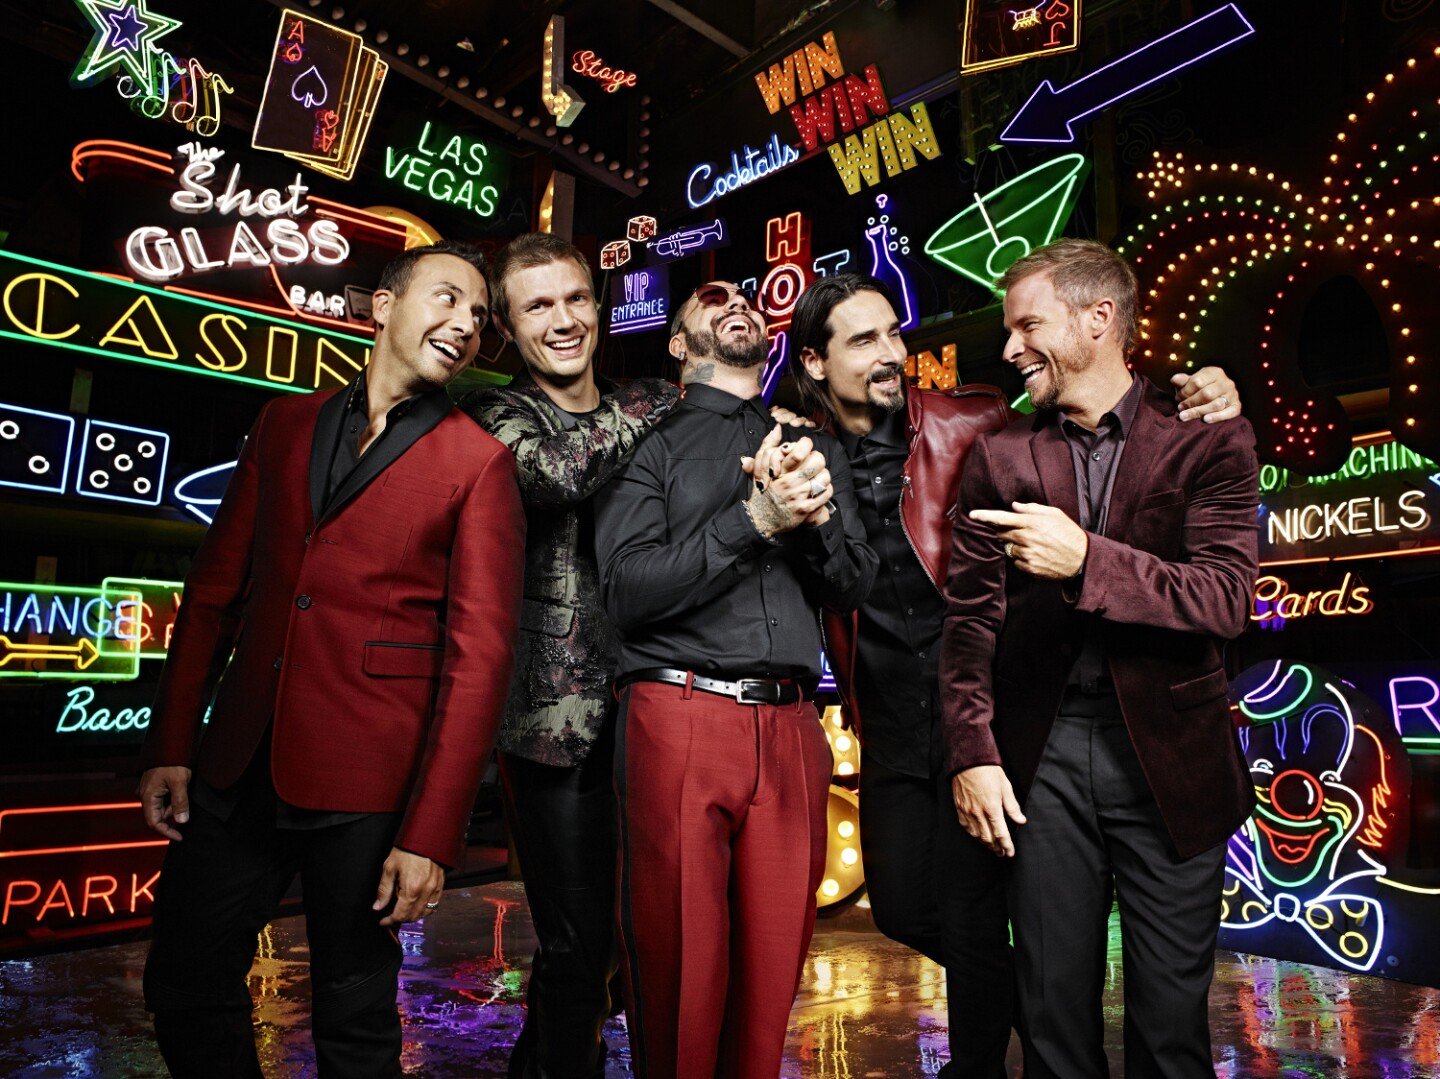 The Backstreet Boys in front of Lisa Schulte's work